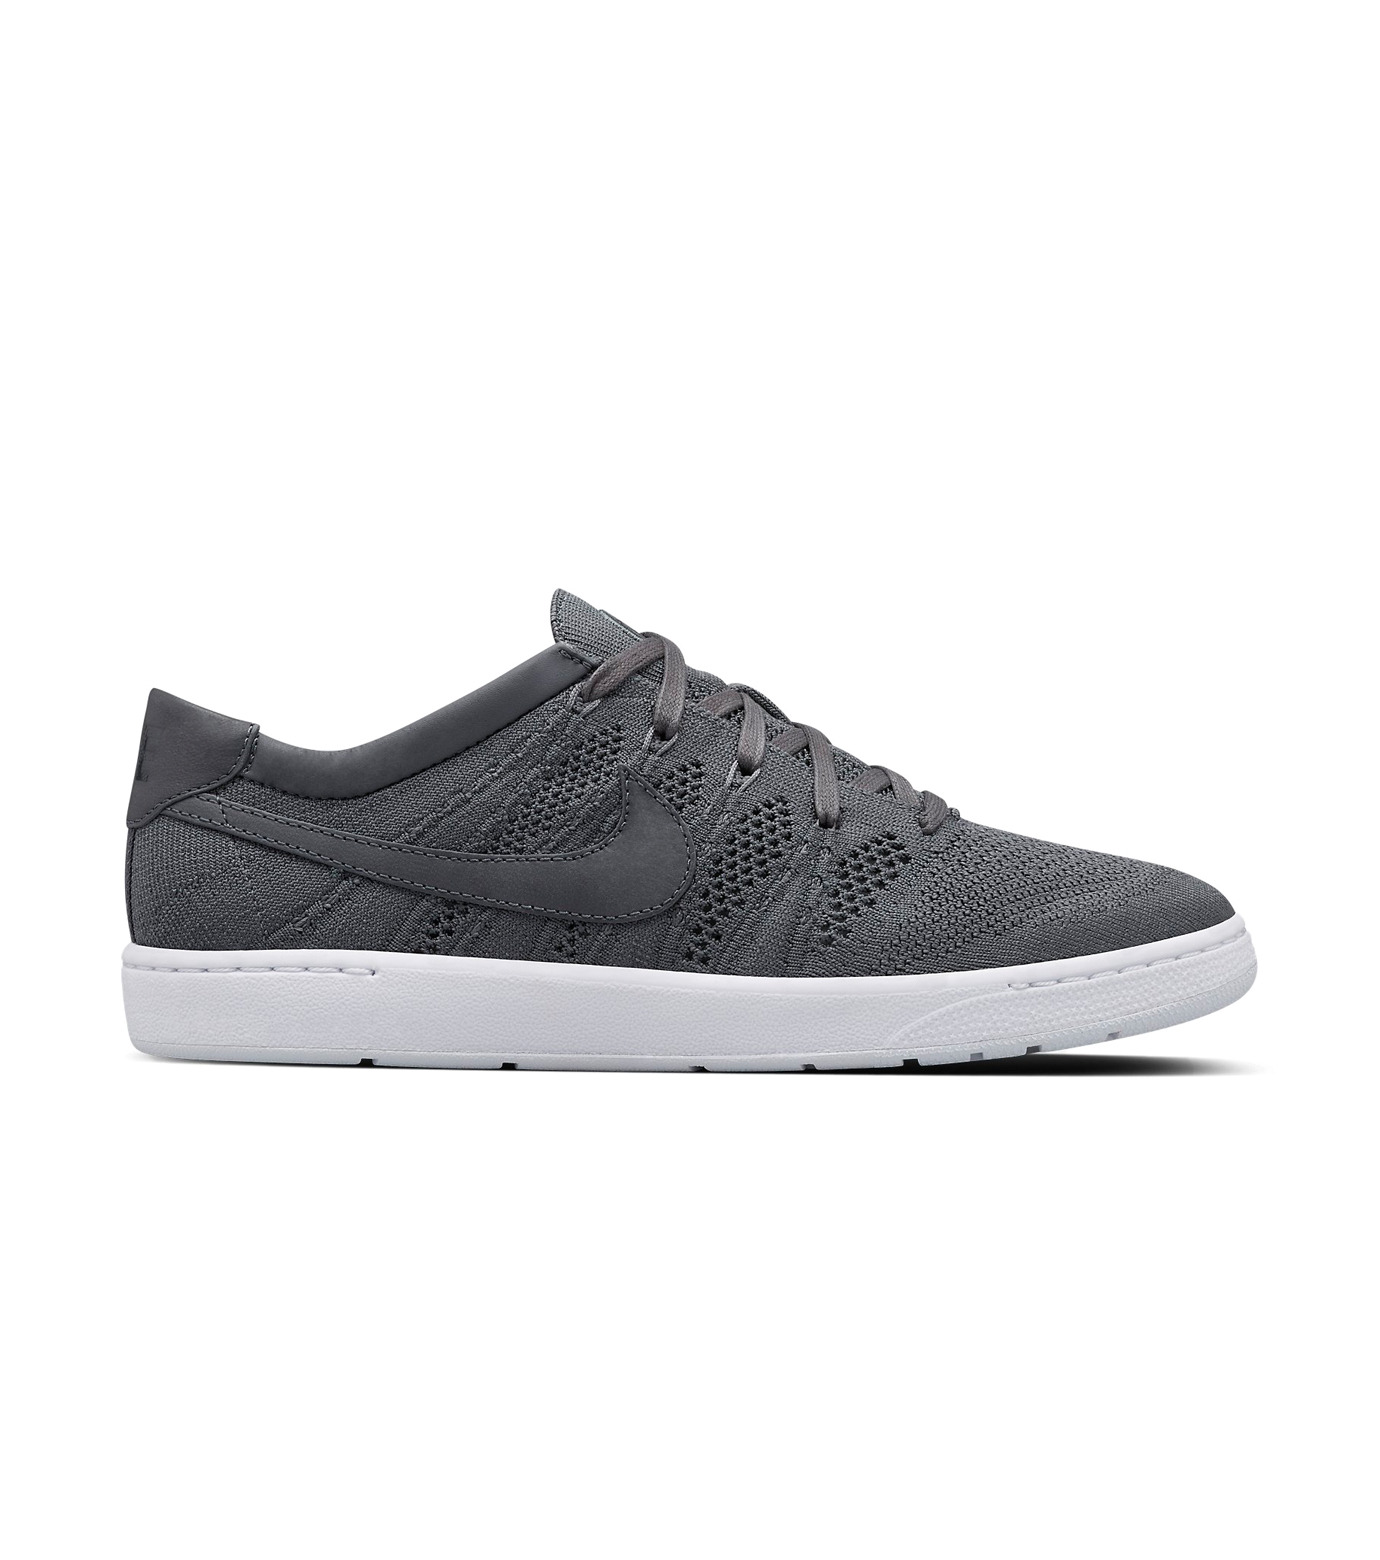 NIKE(ナイキ)のCOURT TENNIS CLASSIC ULTRA FLYKNIT X RF-GRAY(シューズ/shoes)-836360-001-11 拡大詳細画像1